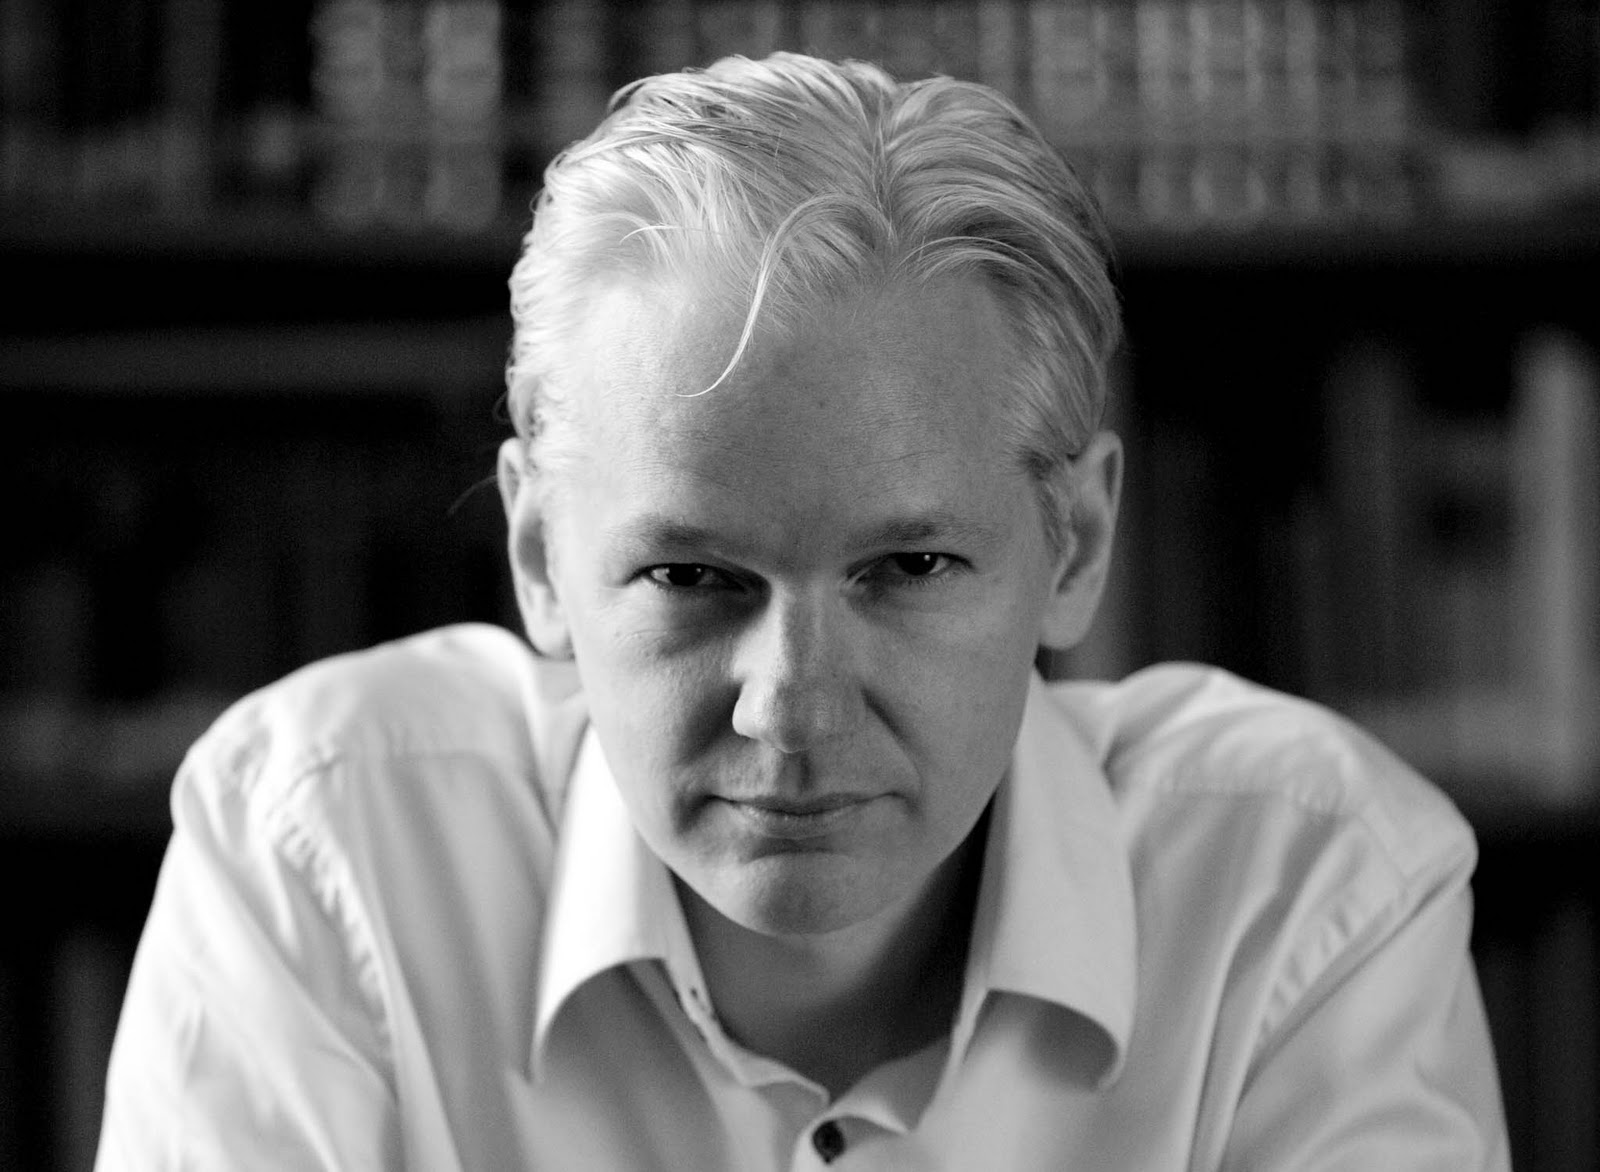 The greater problem of Wikileaks: When innocent sites become the victims